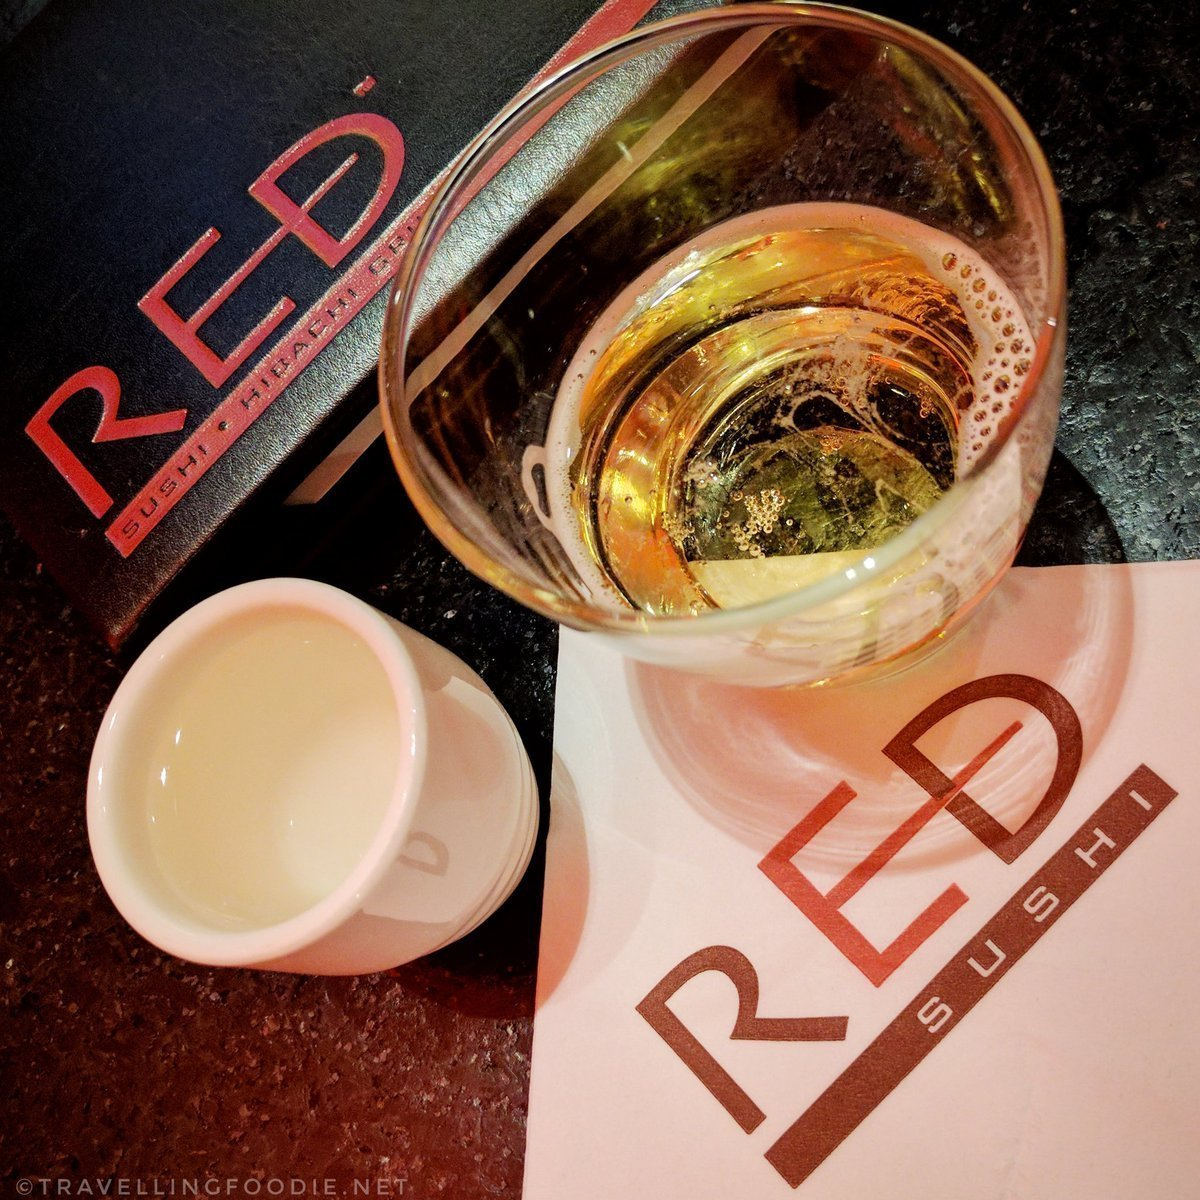 Travelling Foodie Eats at Red Sushi in Golden Nugget Las Vegas Nevada